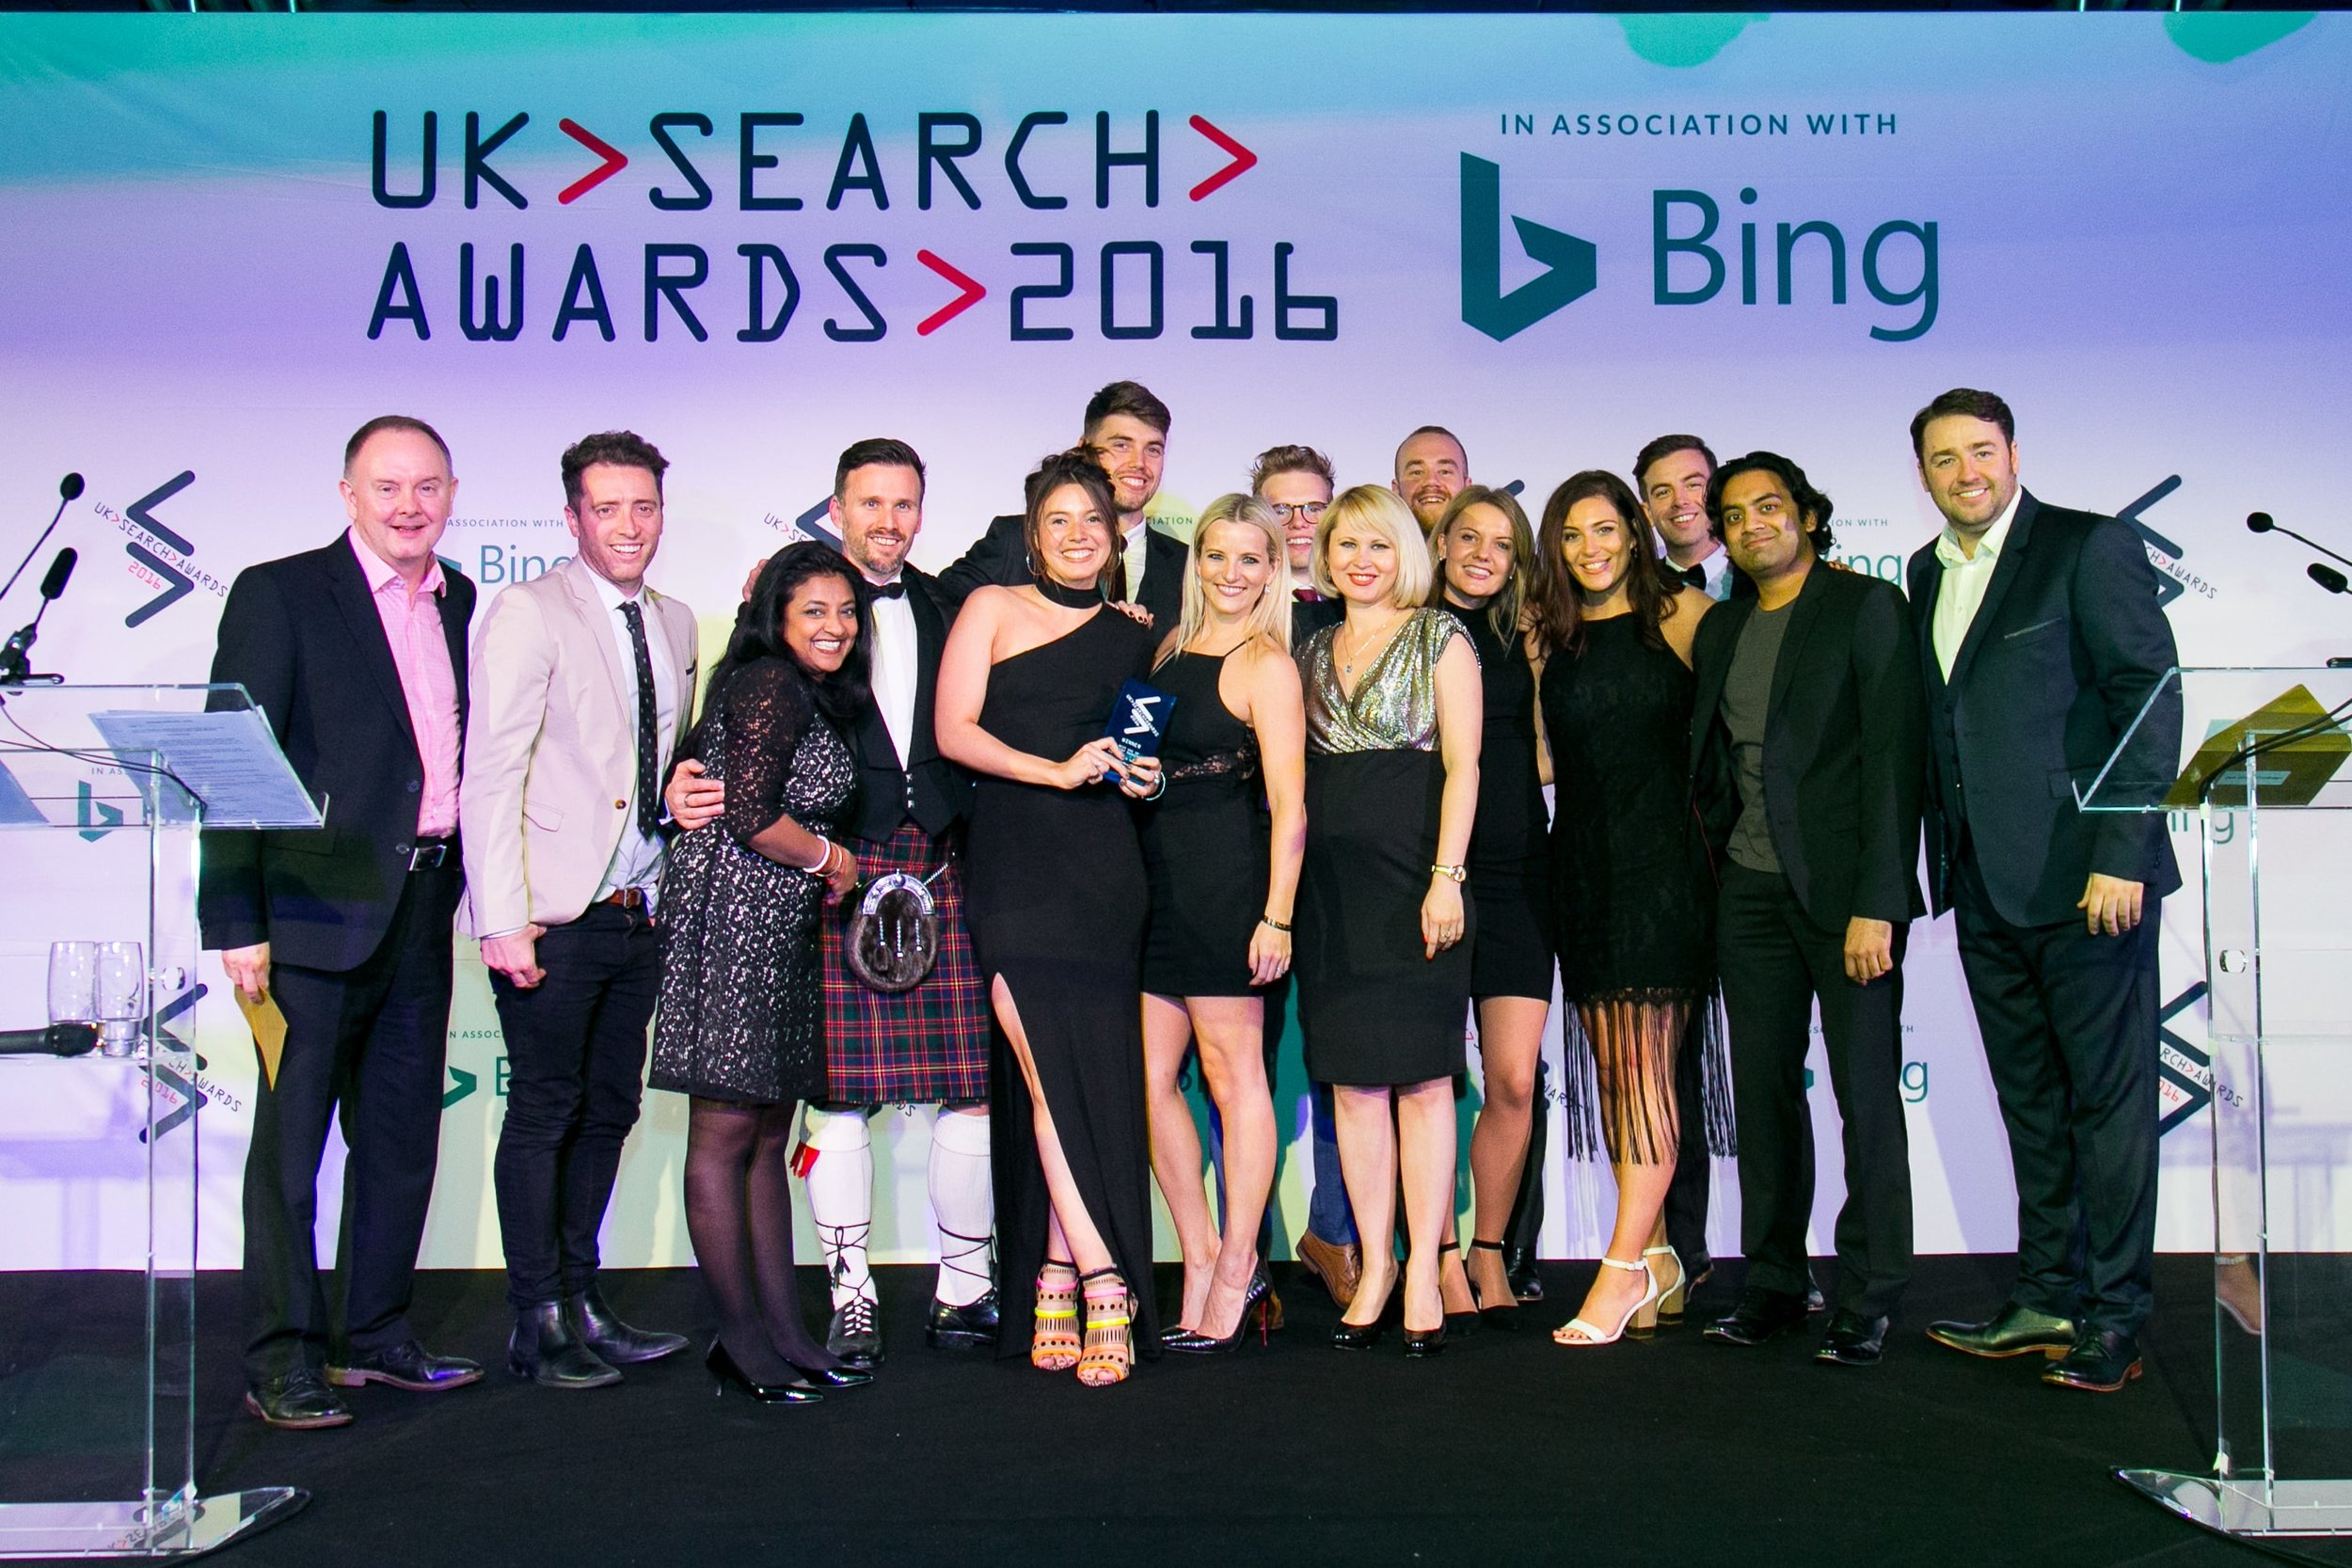 UK Search Awards10.jpg-min.jpg